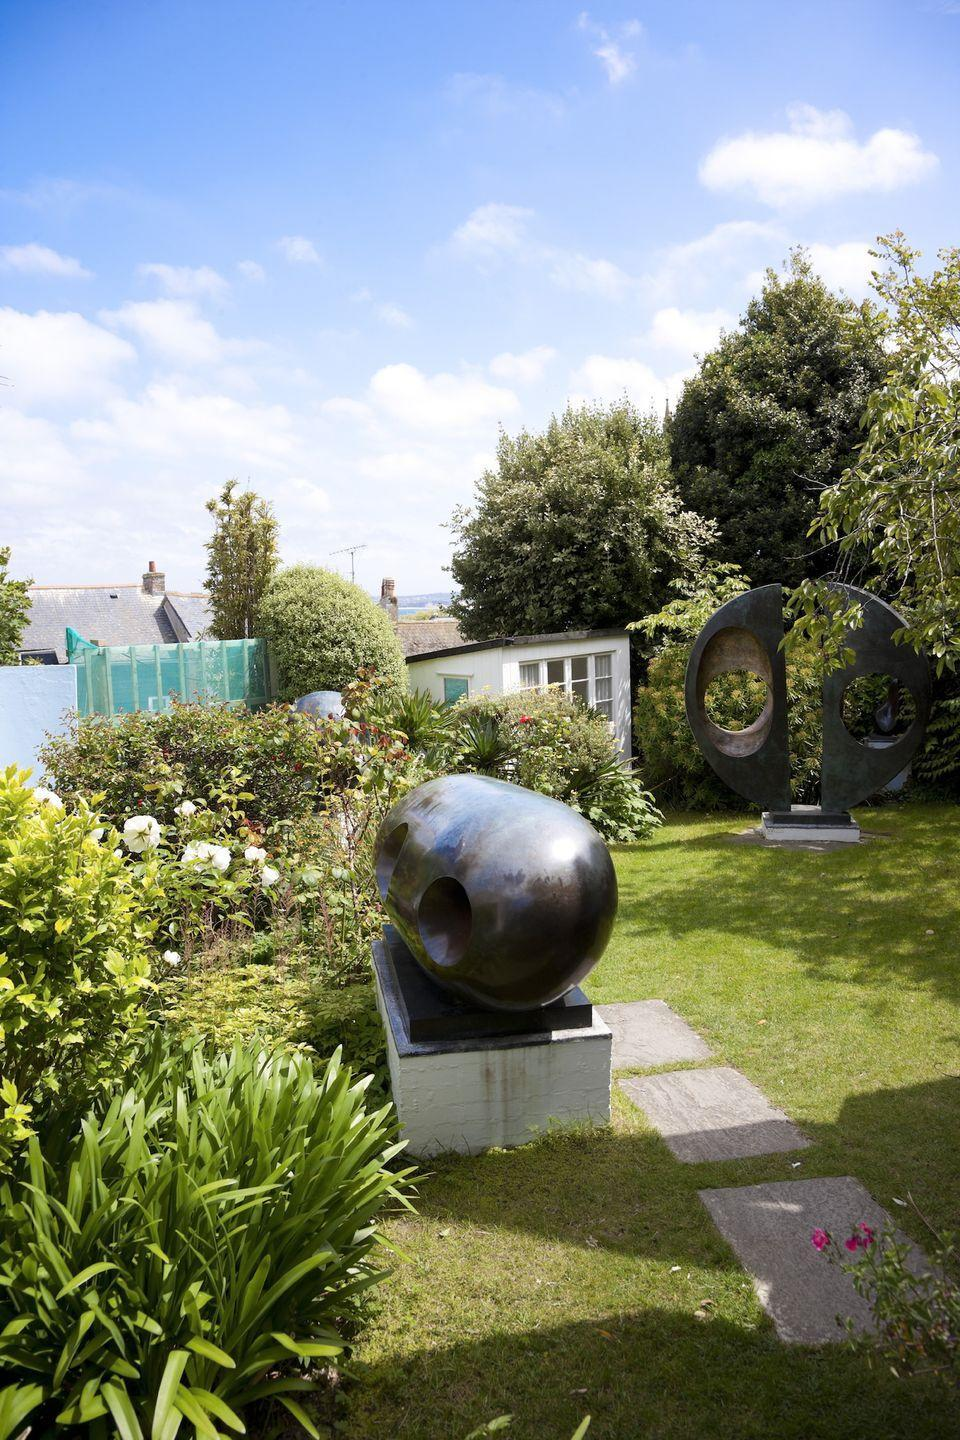 "<p>Discover the work of Barbara Hepworth at this stunning Cornish garden. Most of the bronze sculptures on display are ones Barbara placed herself. She first came to live in Cornwall with her husband in 1939, so this exhibit really is a nod to her life. Make sure not to miss out. </p><p><a class=""link rapid-noclick-resp"" href=""https://www.tate.org.uk/visit/tate-st-ives/barbara-hepworth-museum-and-sculpture-garden"" rel=""nofollow noopener"" target=""_blank"" data-ylk=""slk:BOOK NOW"">BOOK NOW</a></p>"